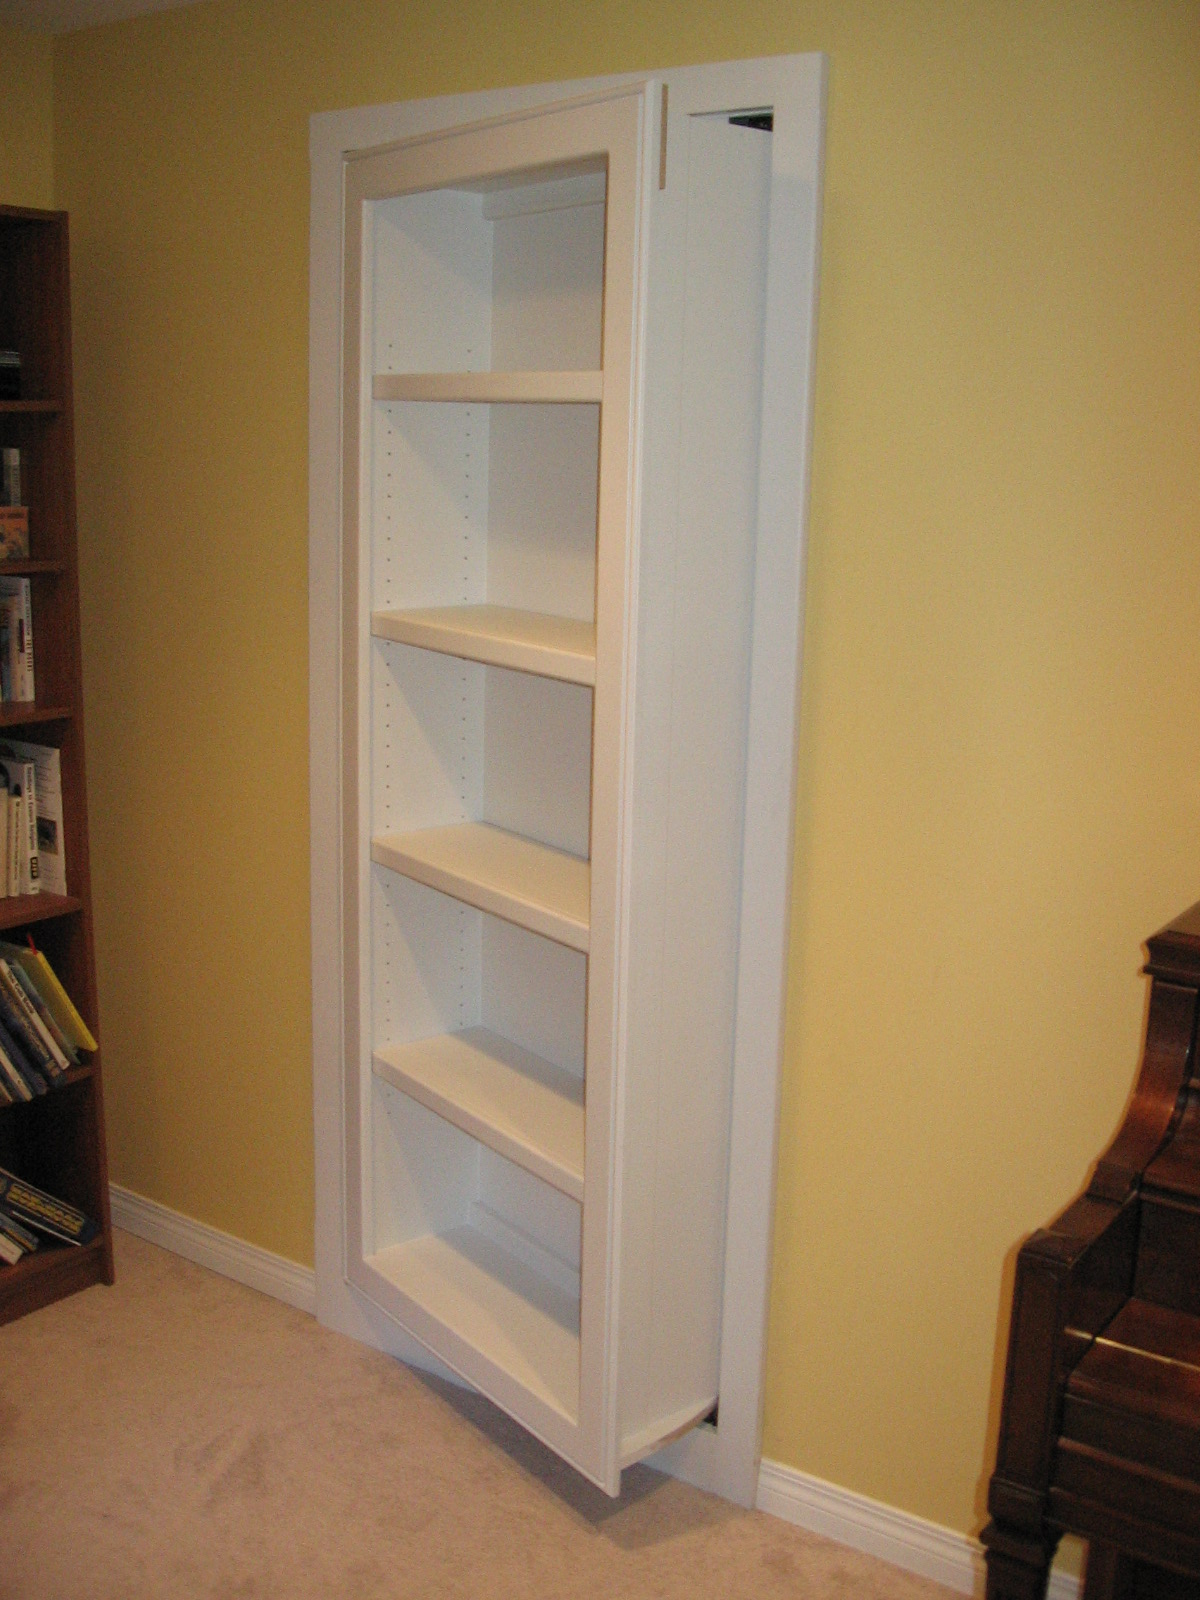 Standard Bookcase Partially Open